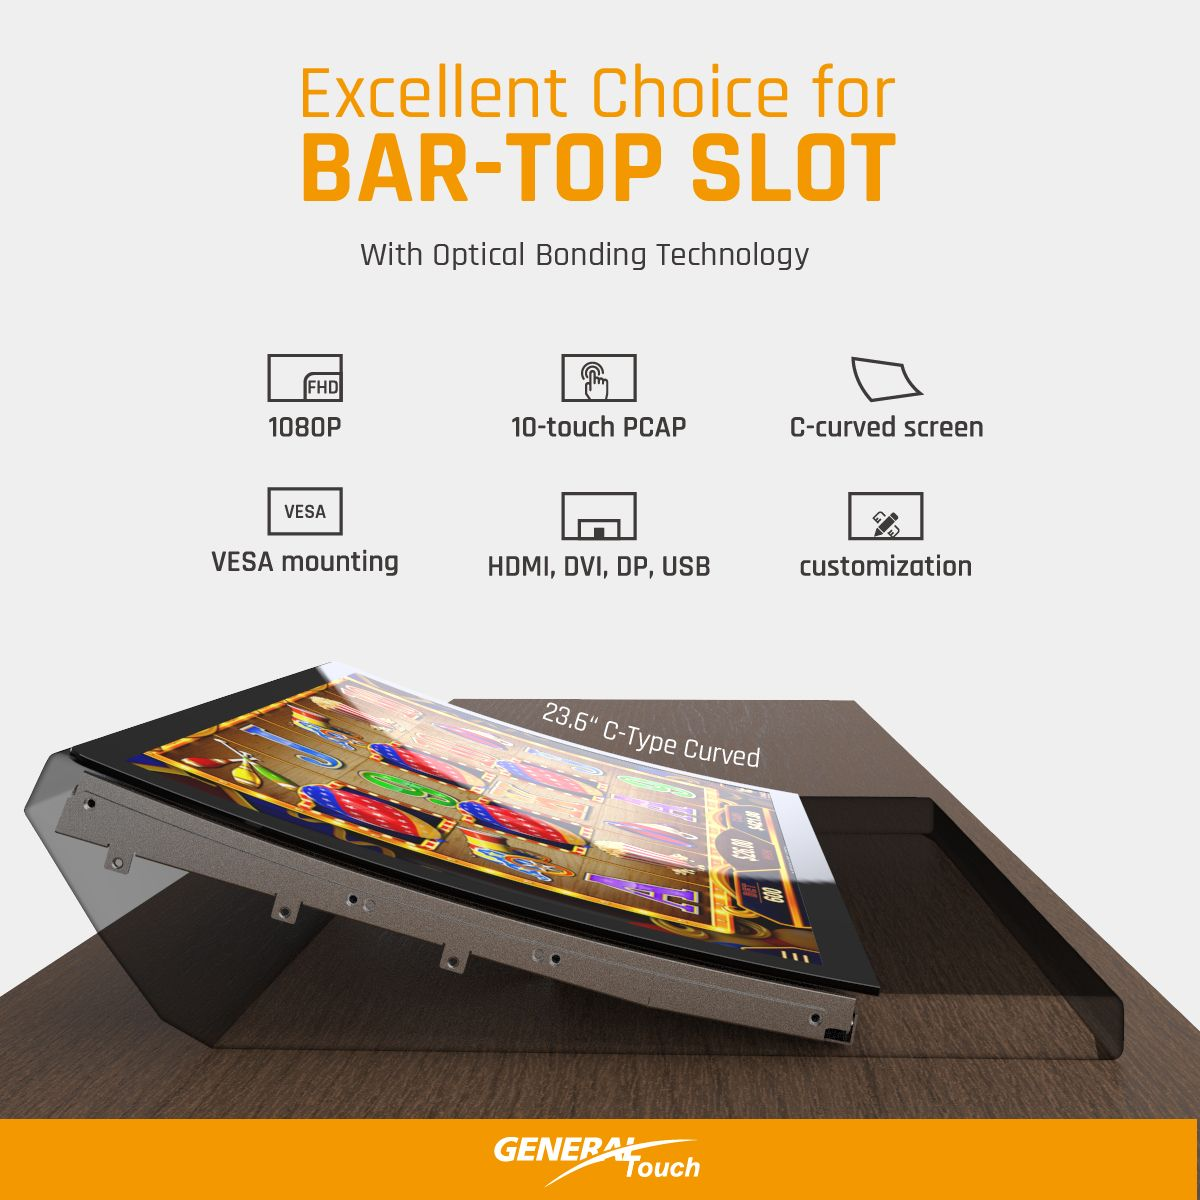 Clear Bar-Top Slot Viewing